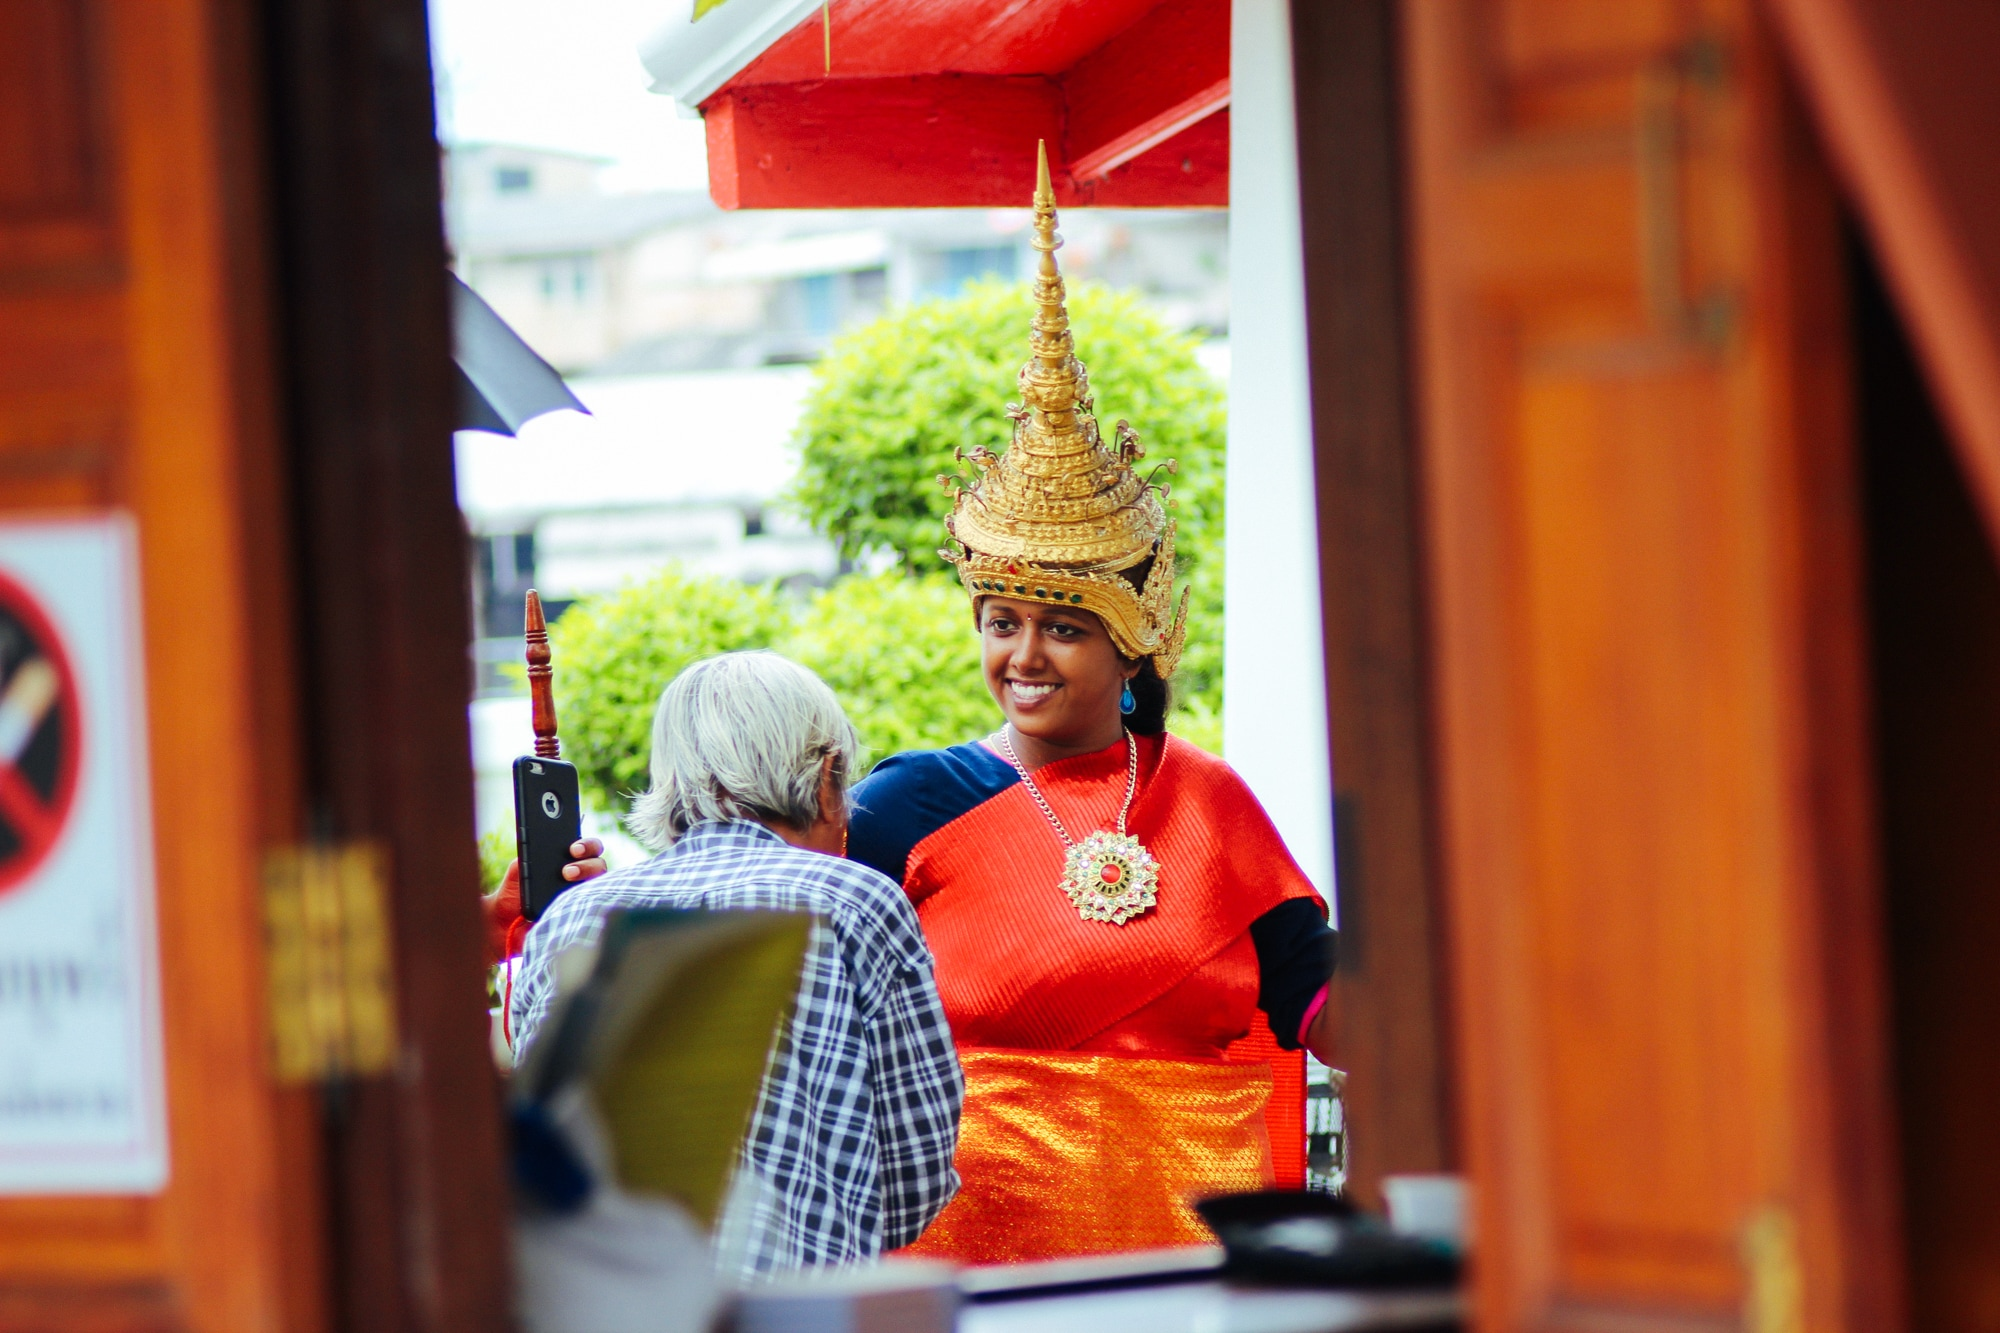 A tourist dressed up in Thai attire